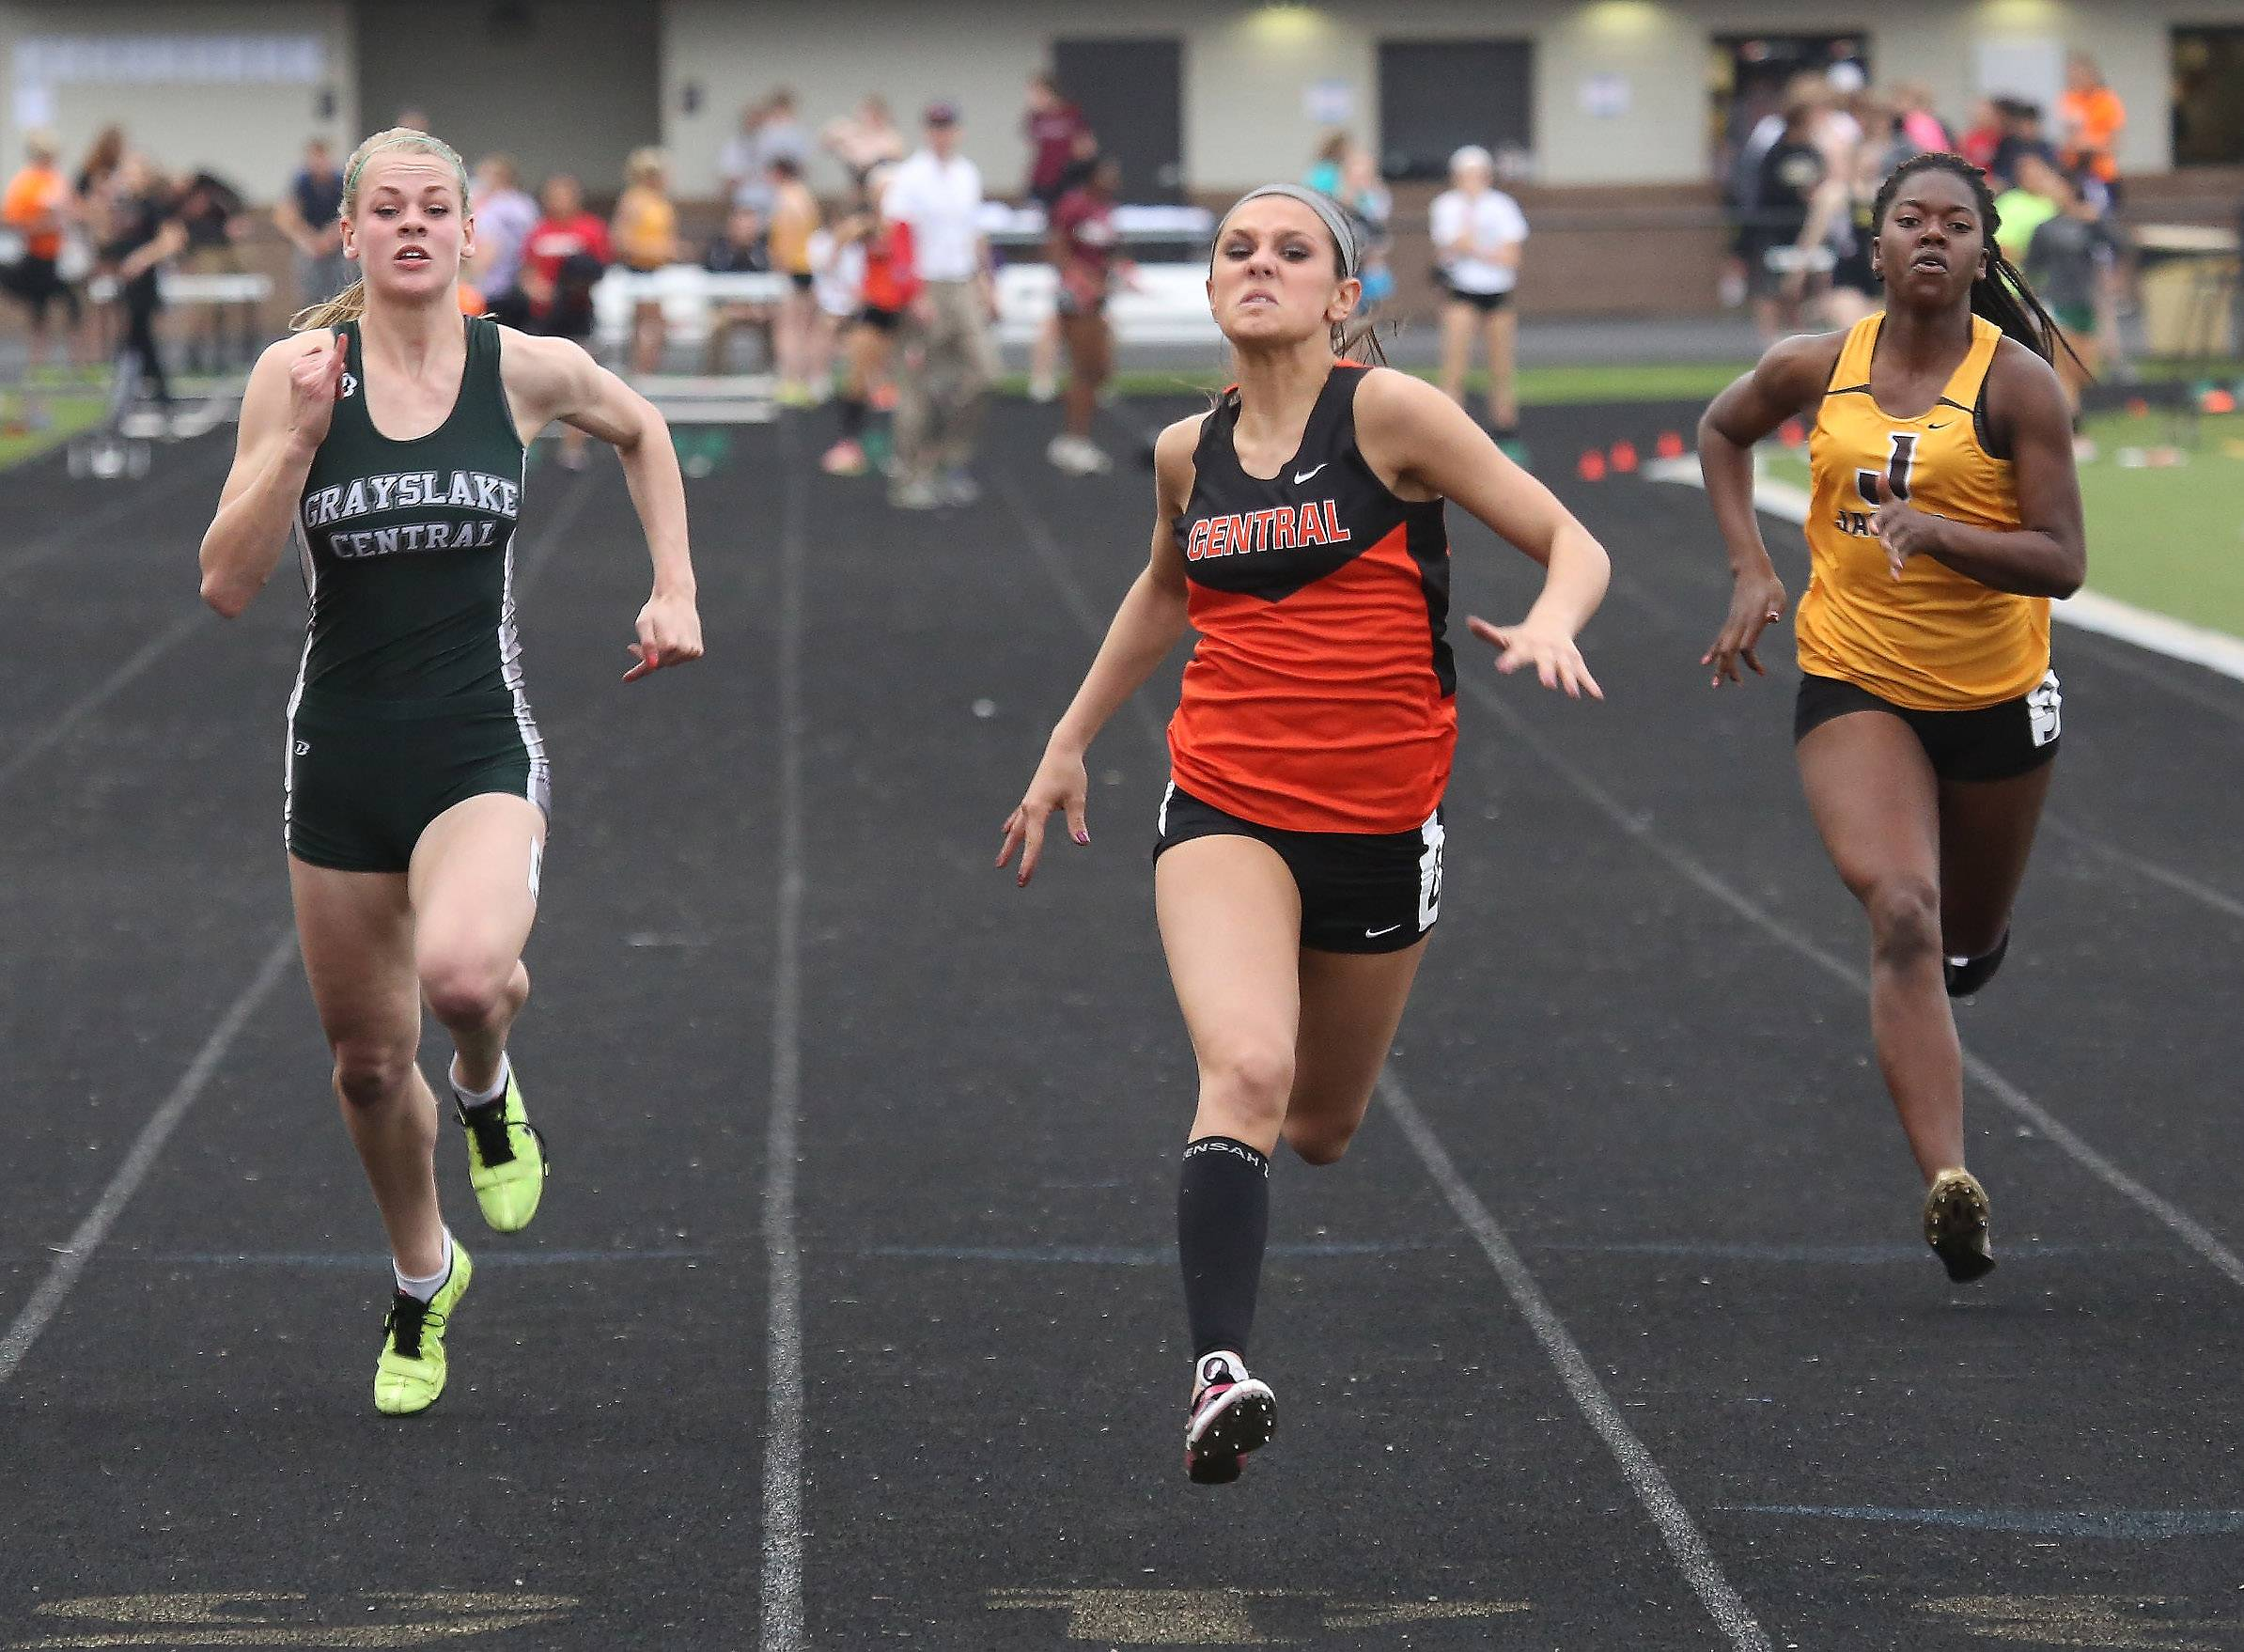 Crystal Lake Central sprinter Celeste Madda wins the 100-meter dash with Grayslake Central sprinter Leah Kloss, left, and Jacobs sprinter Taylor Bradford, right, during the Fox Valley Conference meet Thursday at Grayslake North.